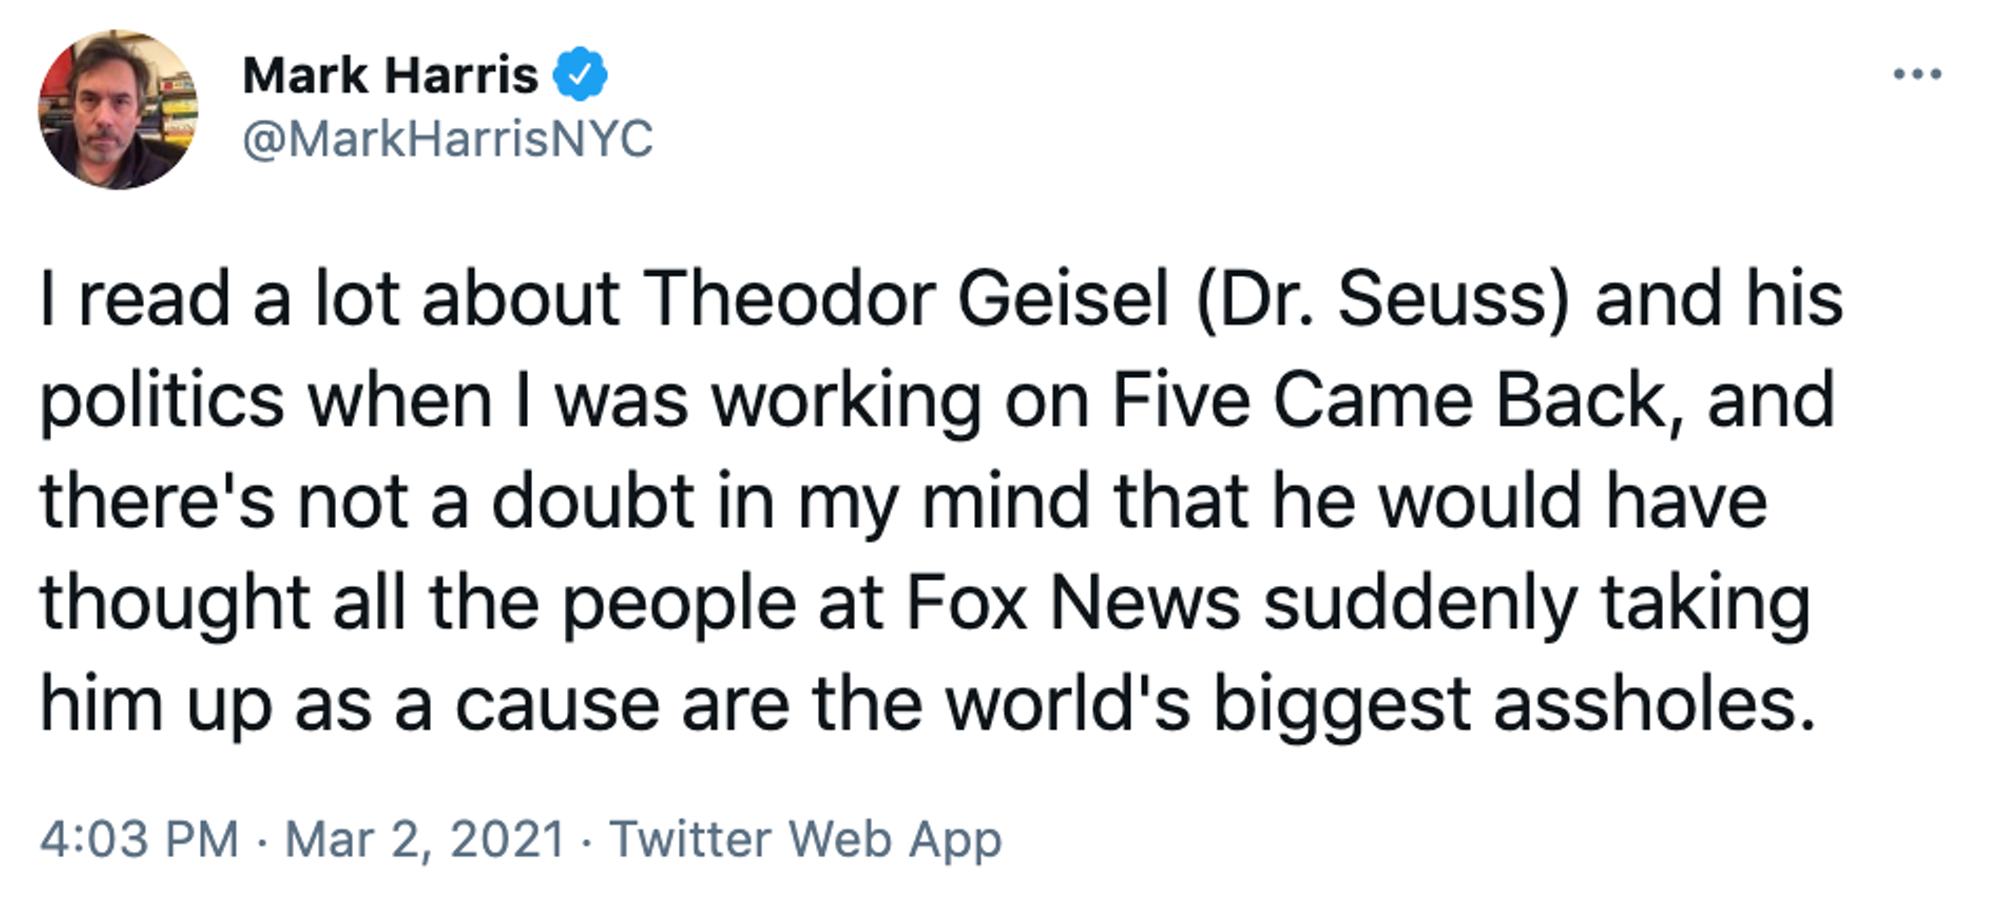 I read a lot about Theodor Geisel (Dr. Seuss) and his politics when I was working on Five Came Back, and there's not a doubt in my mind that he would have thought all the people at Fox News suddenly taking him up as a cause are the world's biggest assholes.